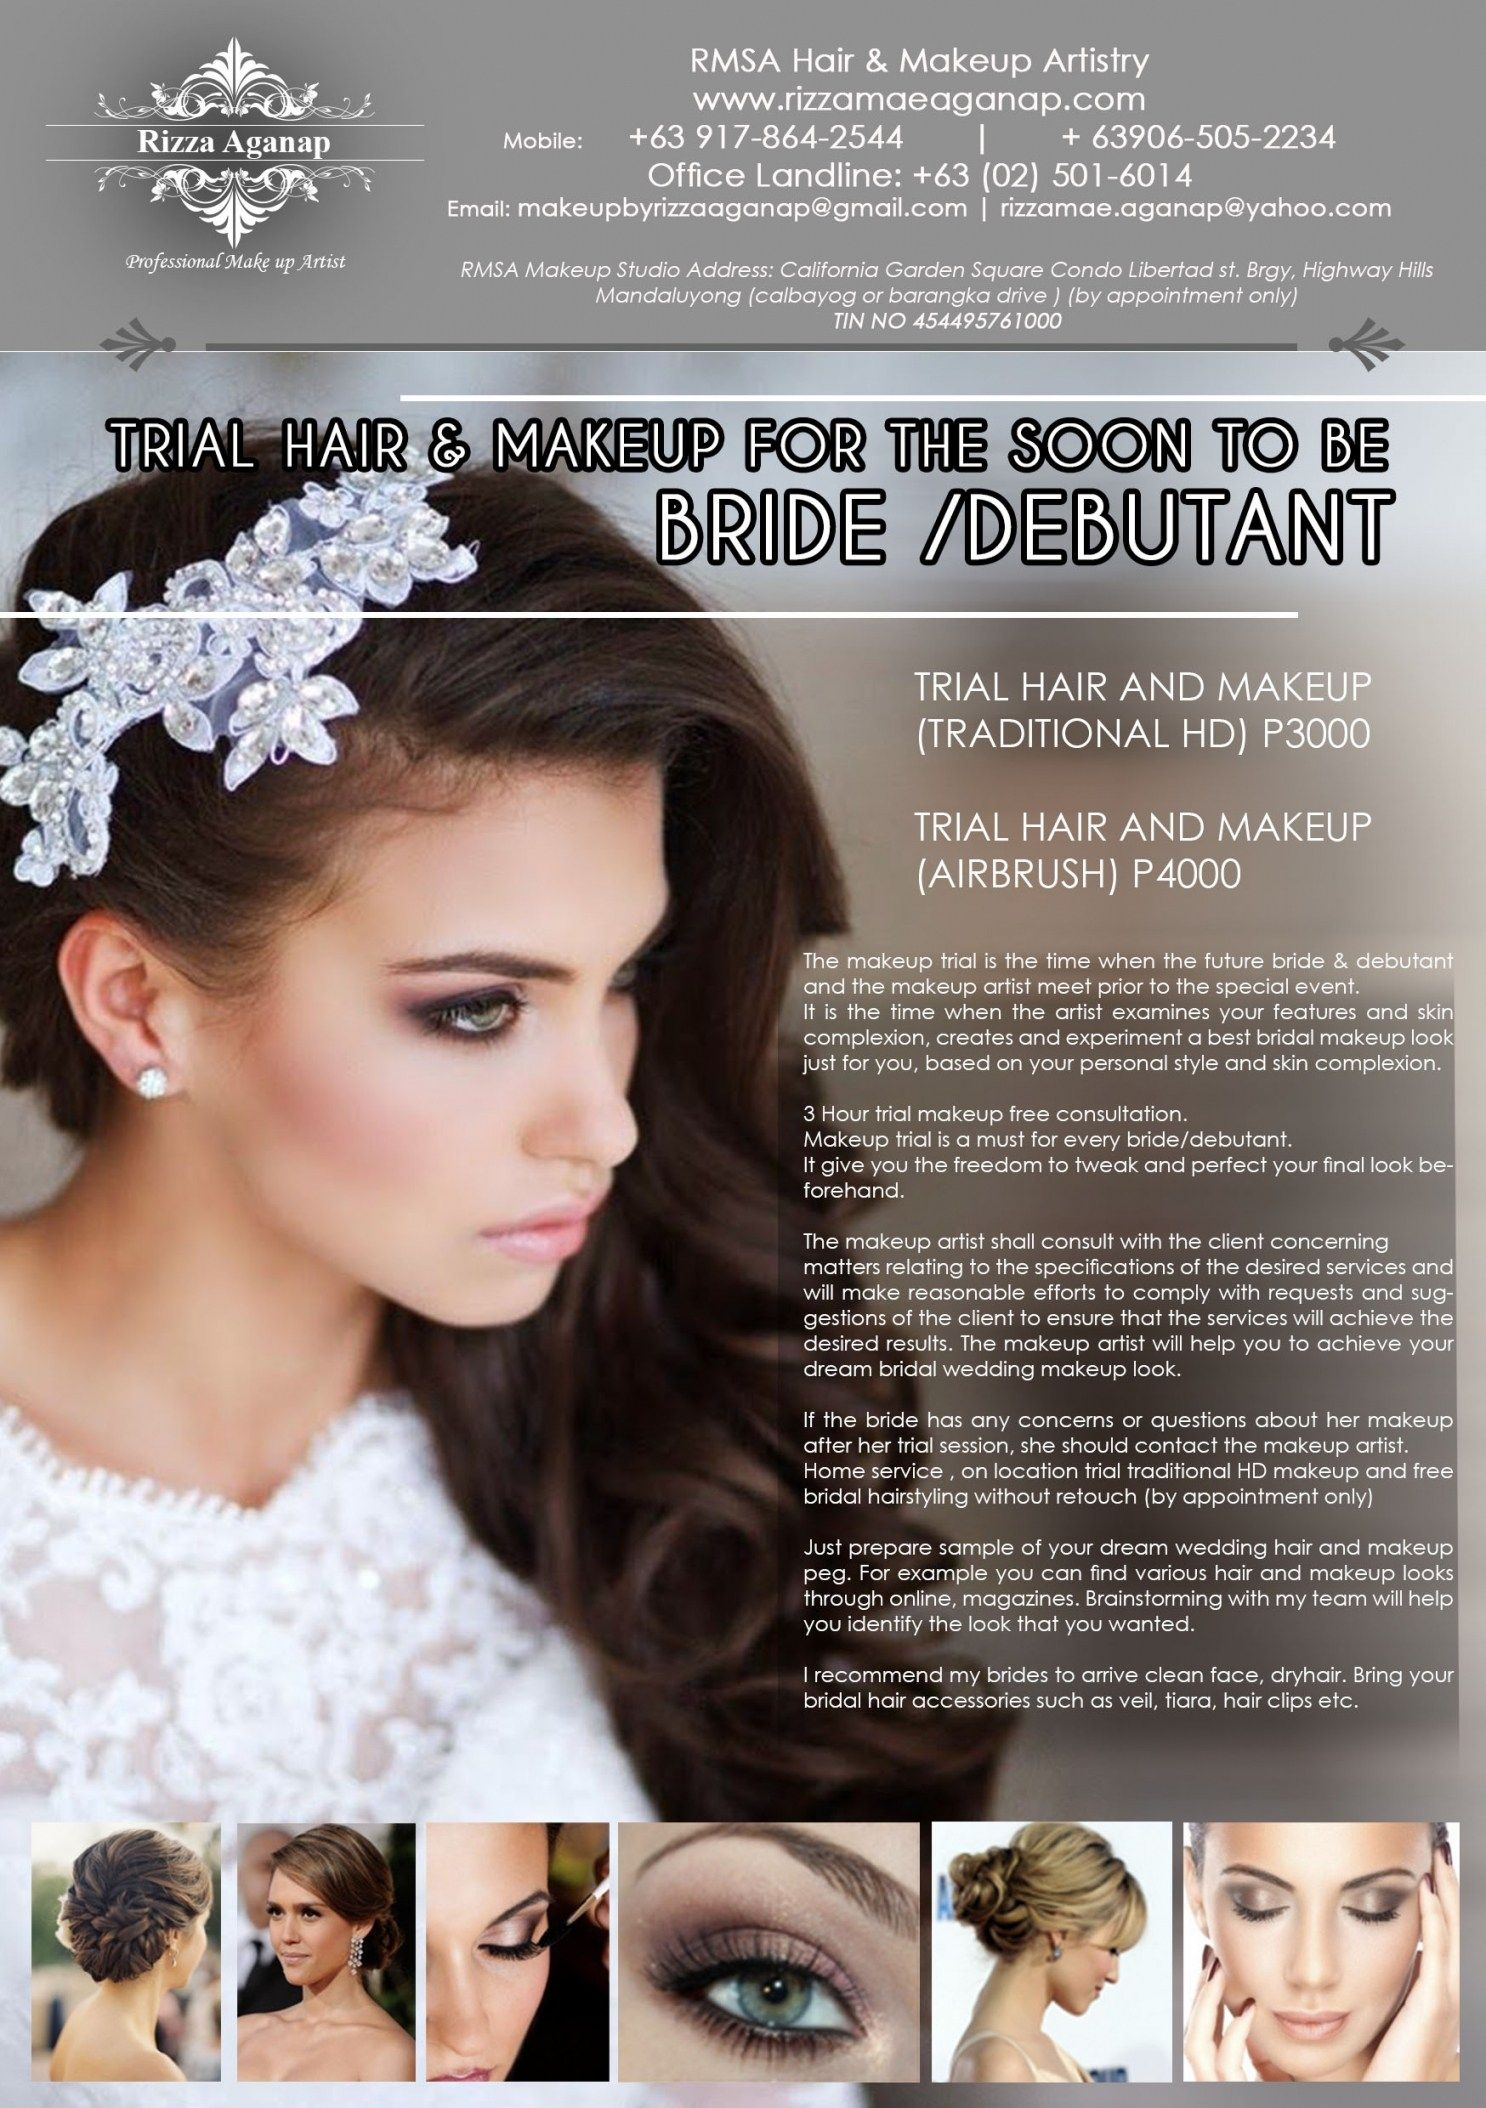 wedding hair and makeup offers | hairstyles ideas for me